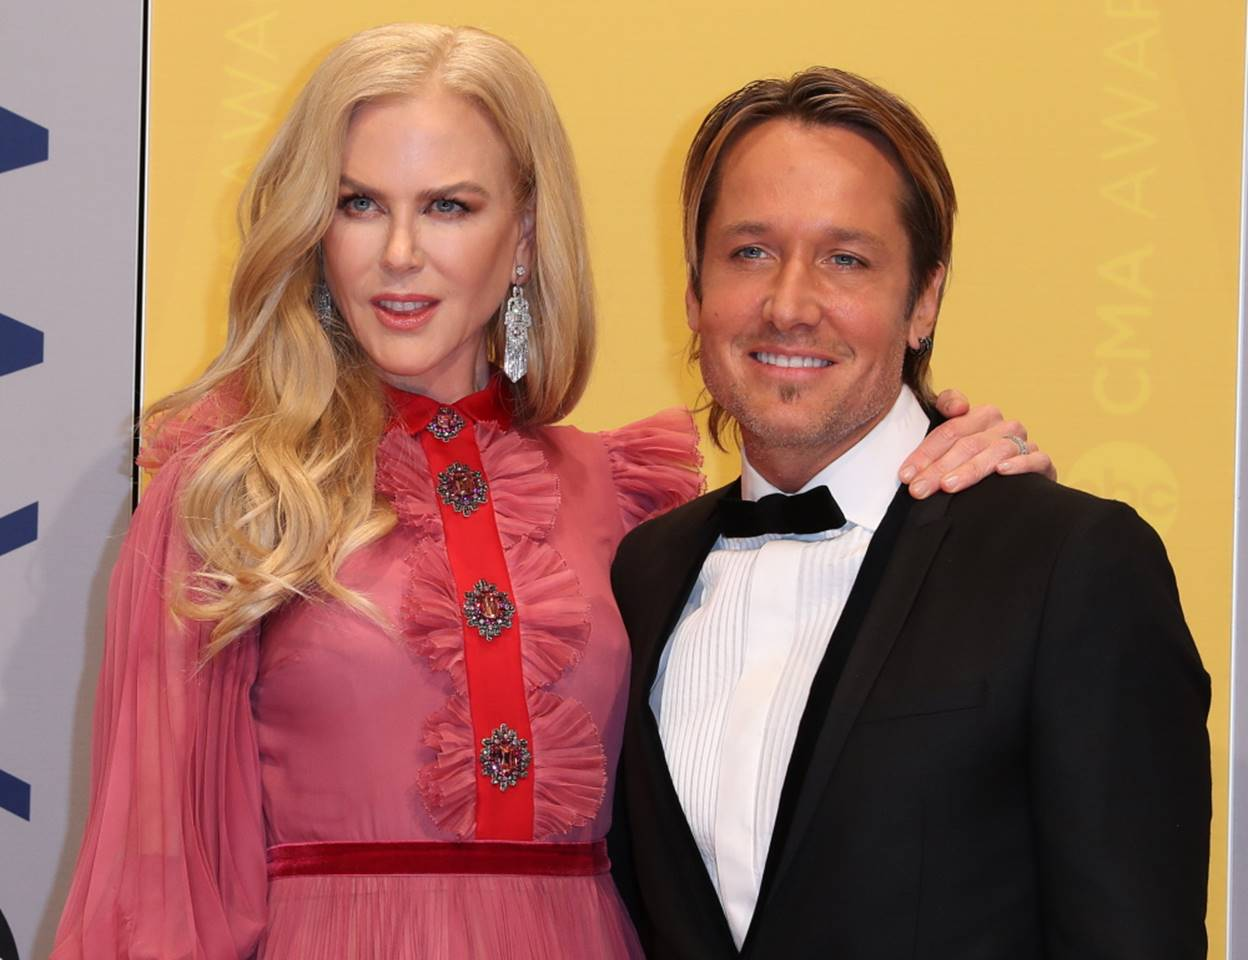 Nicole Kidman Keith Urban Wedding: Nicole Kidman Is Giving Up Her Wedding Dress In The Name